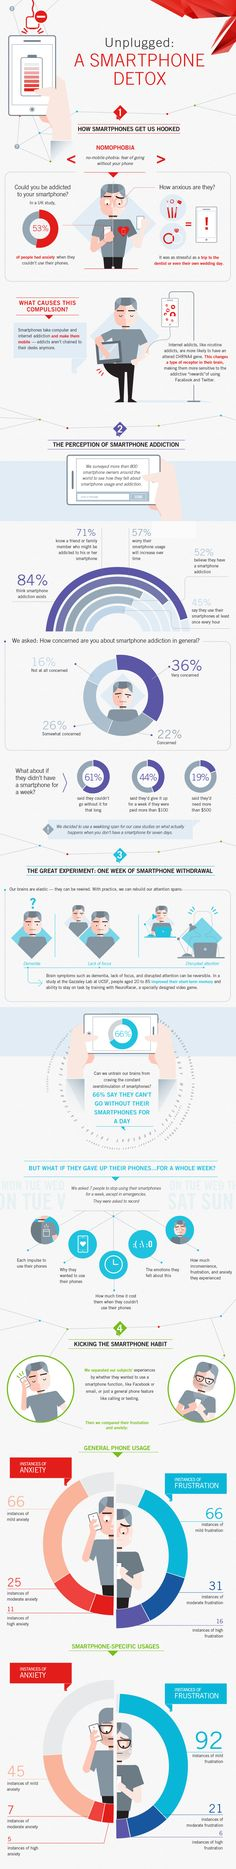 Unplugged: A Smartphone Detox   #Infographic #Smartphone #Internet